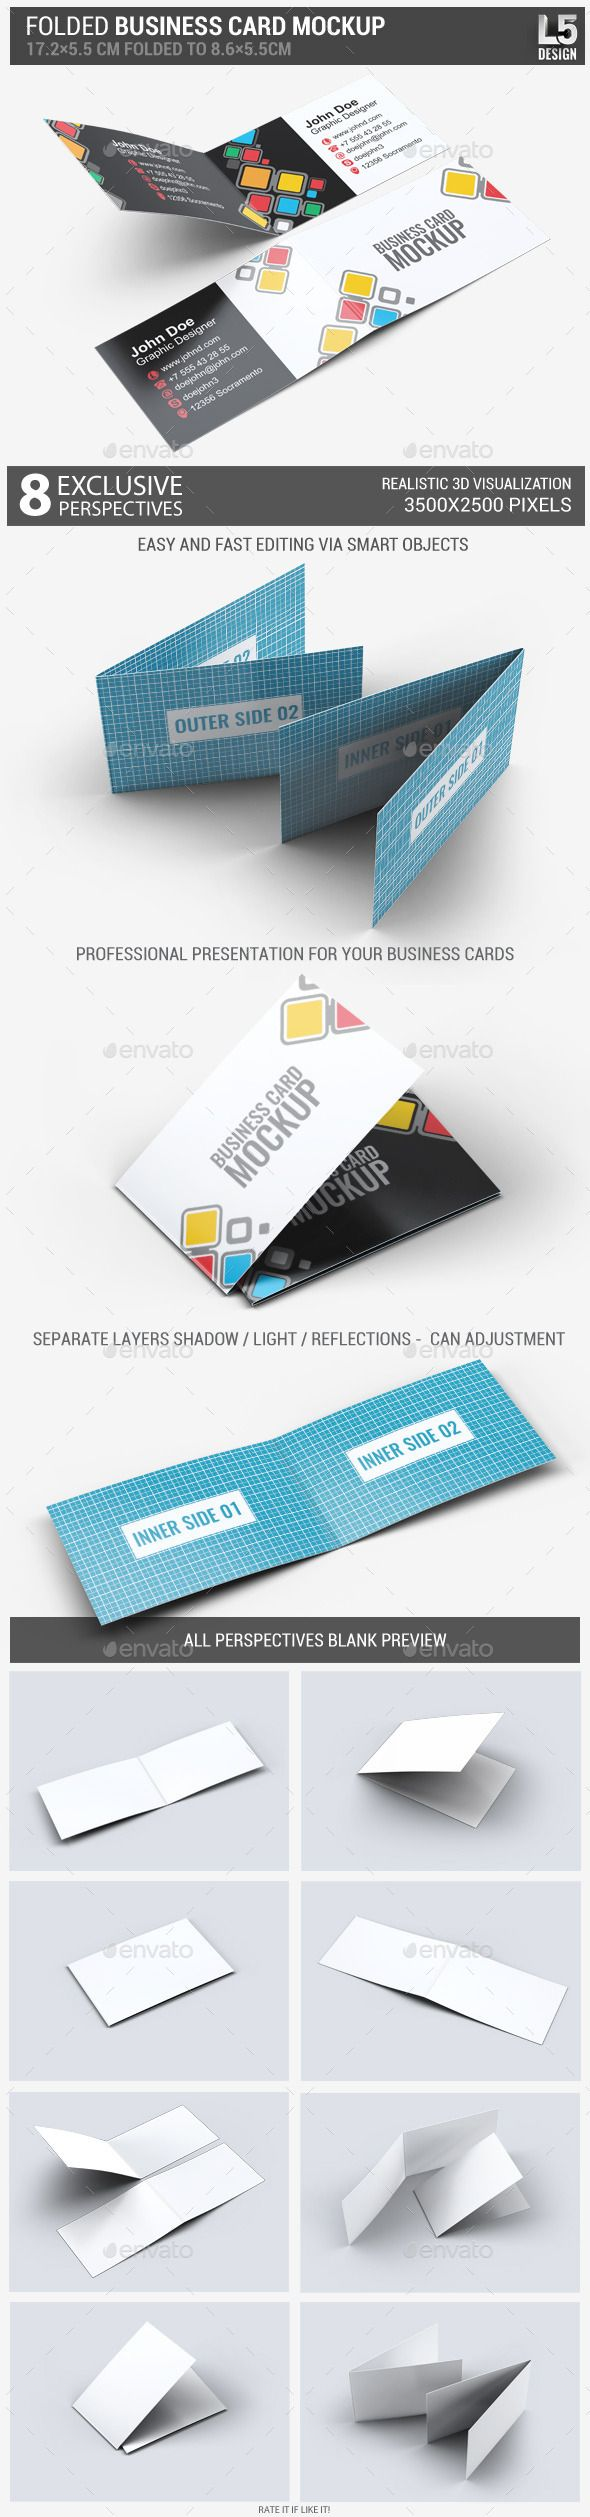 Best 25+ Folded business cards ideas on Pinterest | Pop up ...